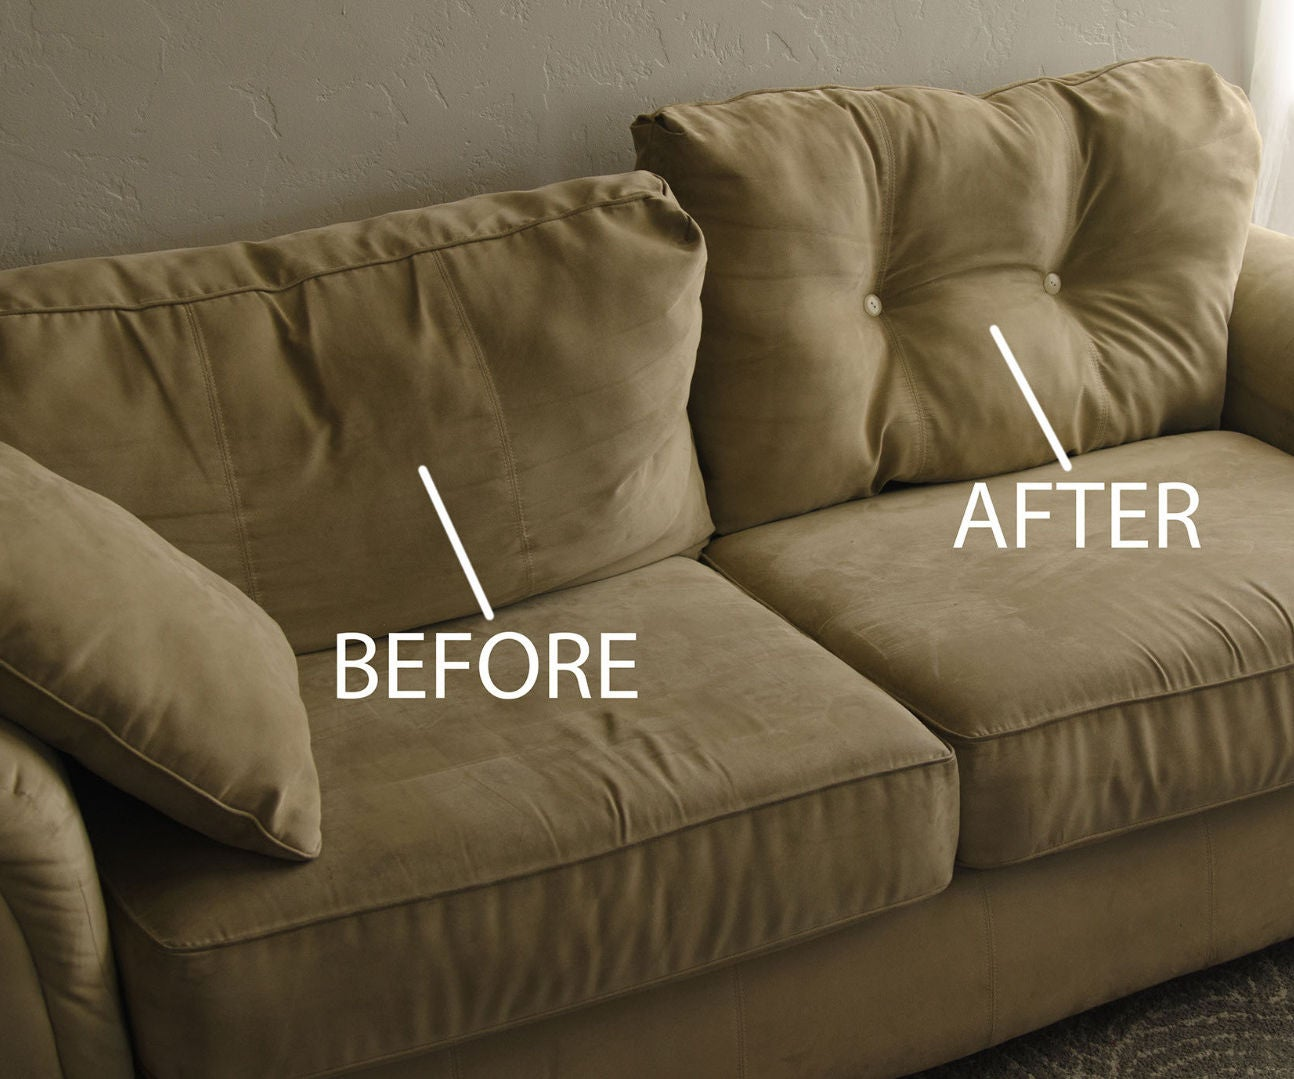 1 Fix For Saggy Couch Cushions 5, How To Repair My Sofa Cushions